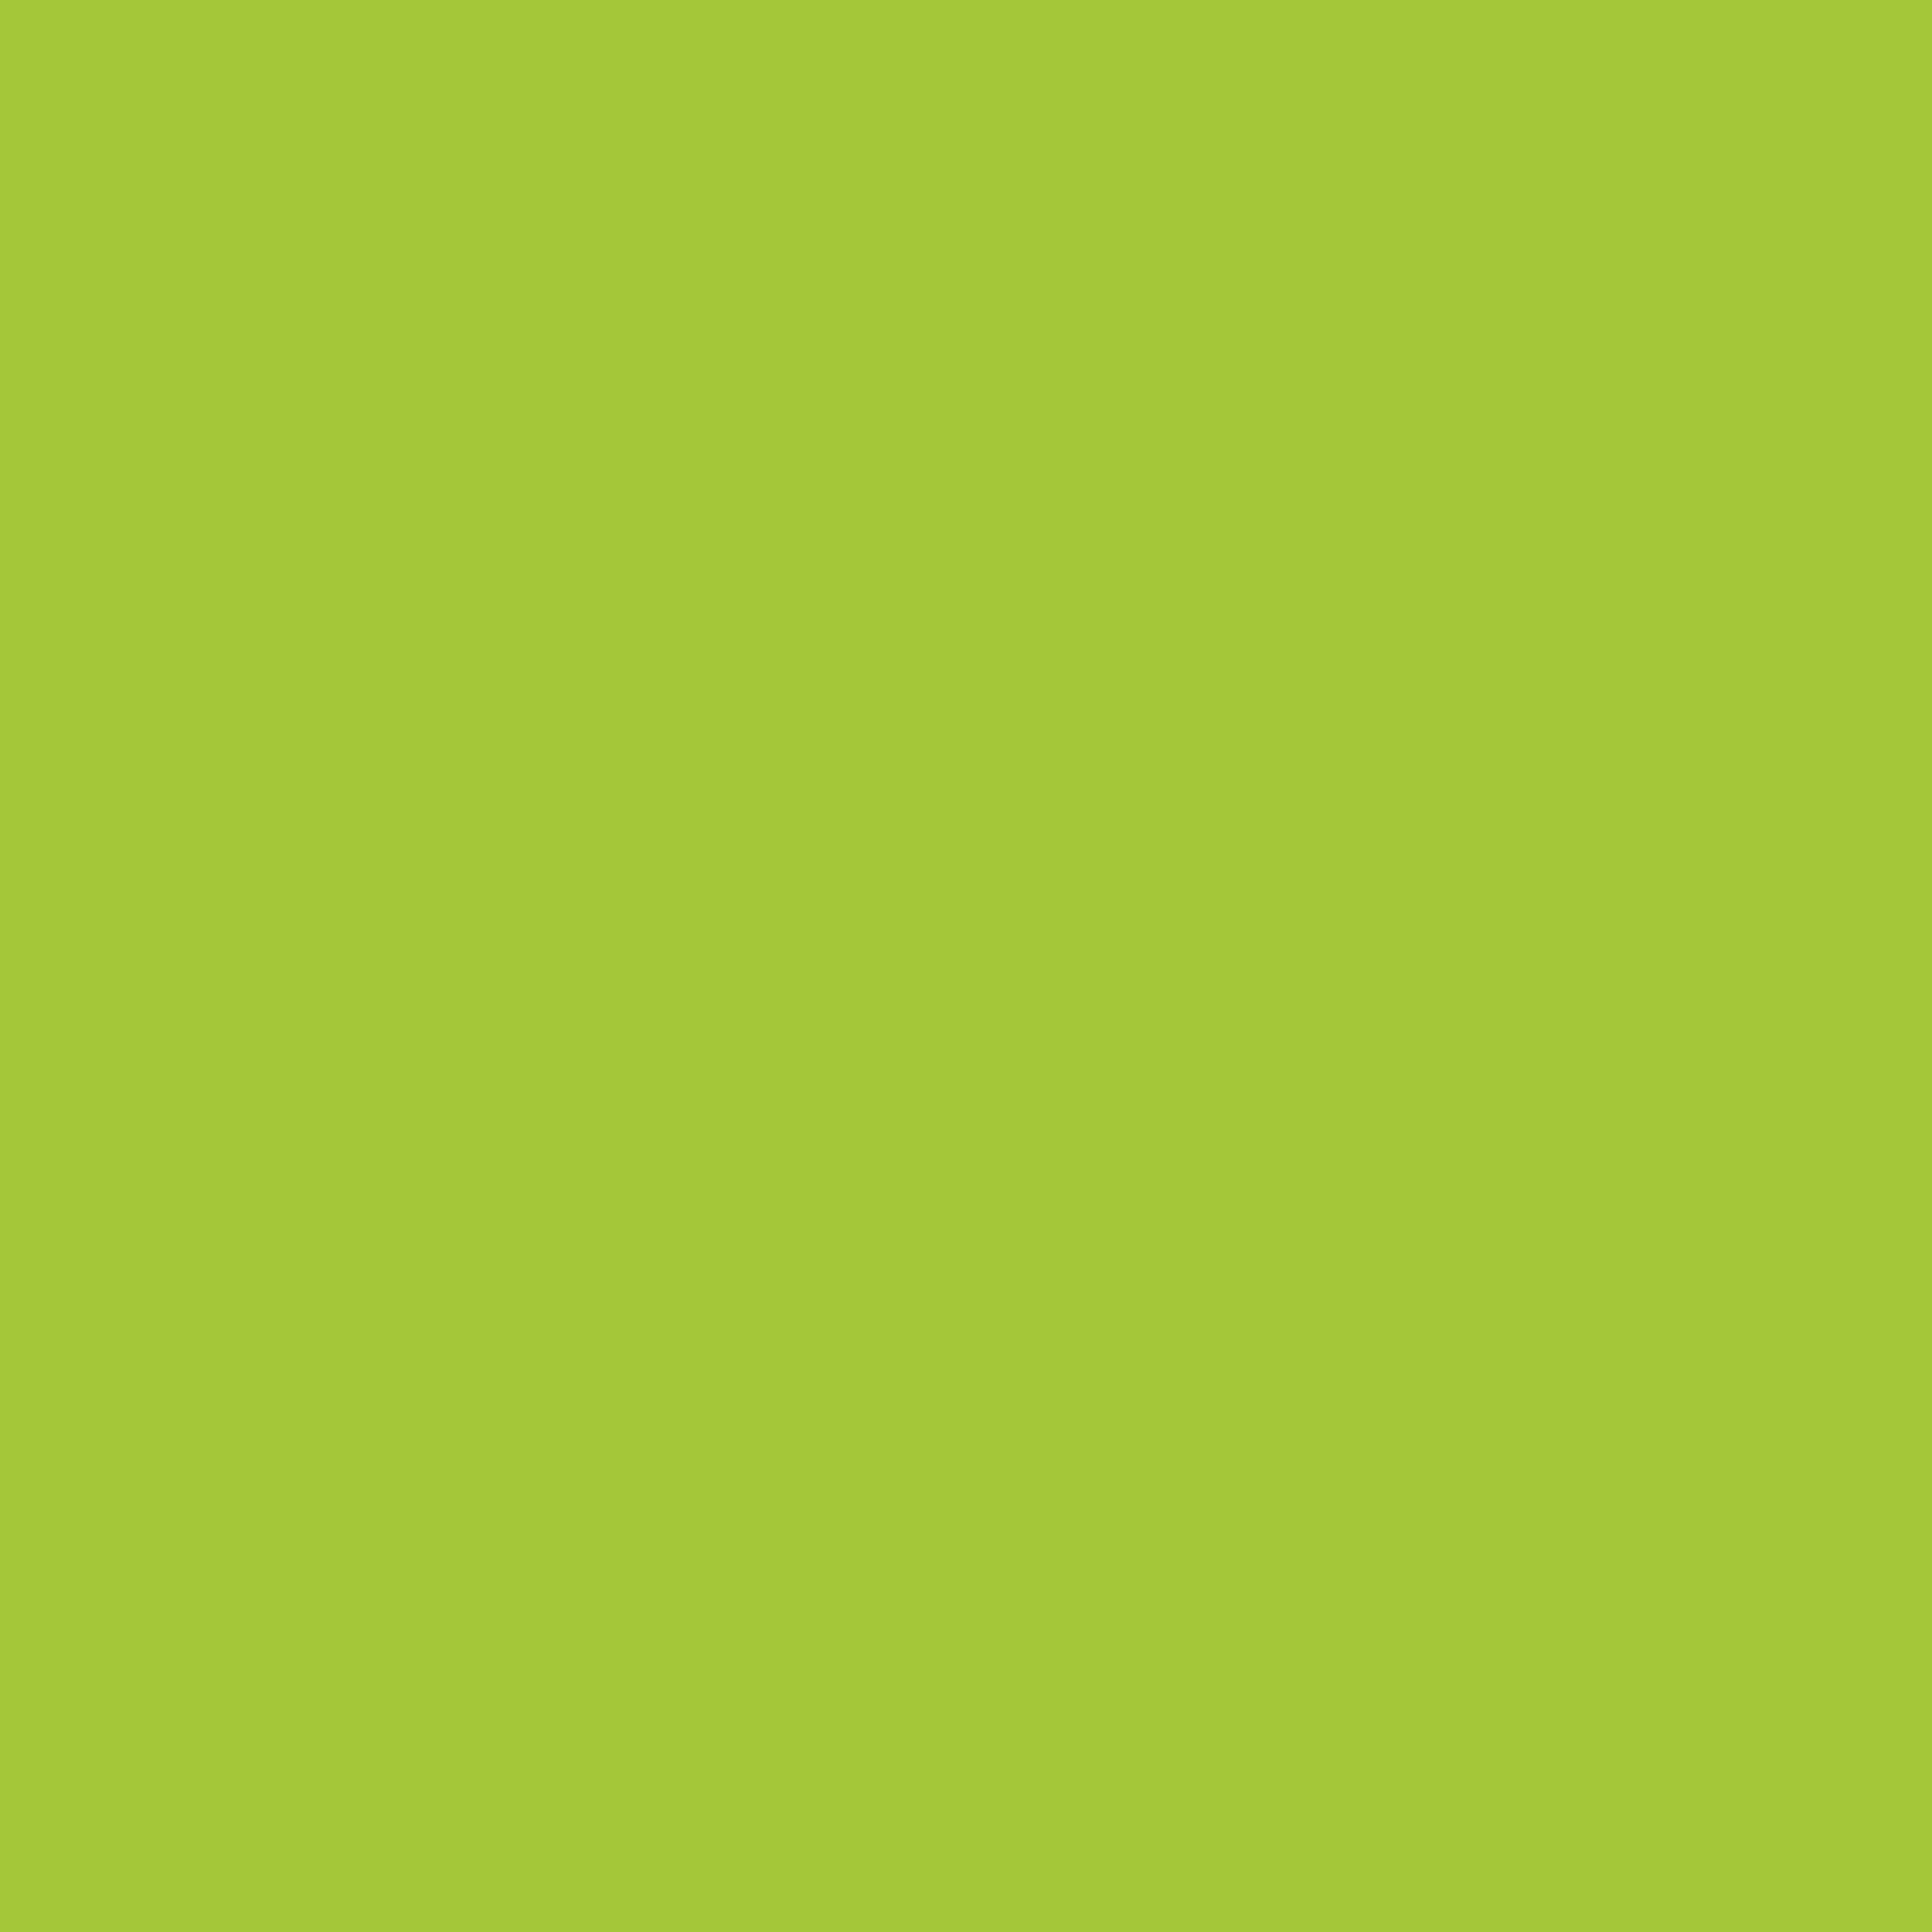 3600x3600 Android Green Solid Color Background